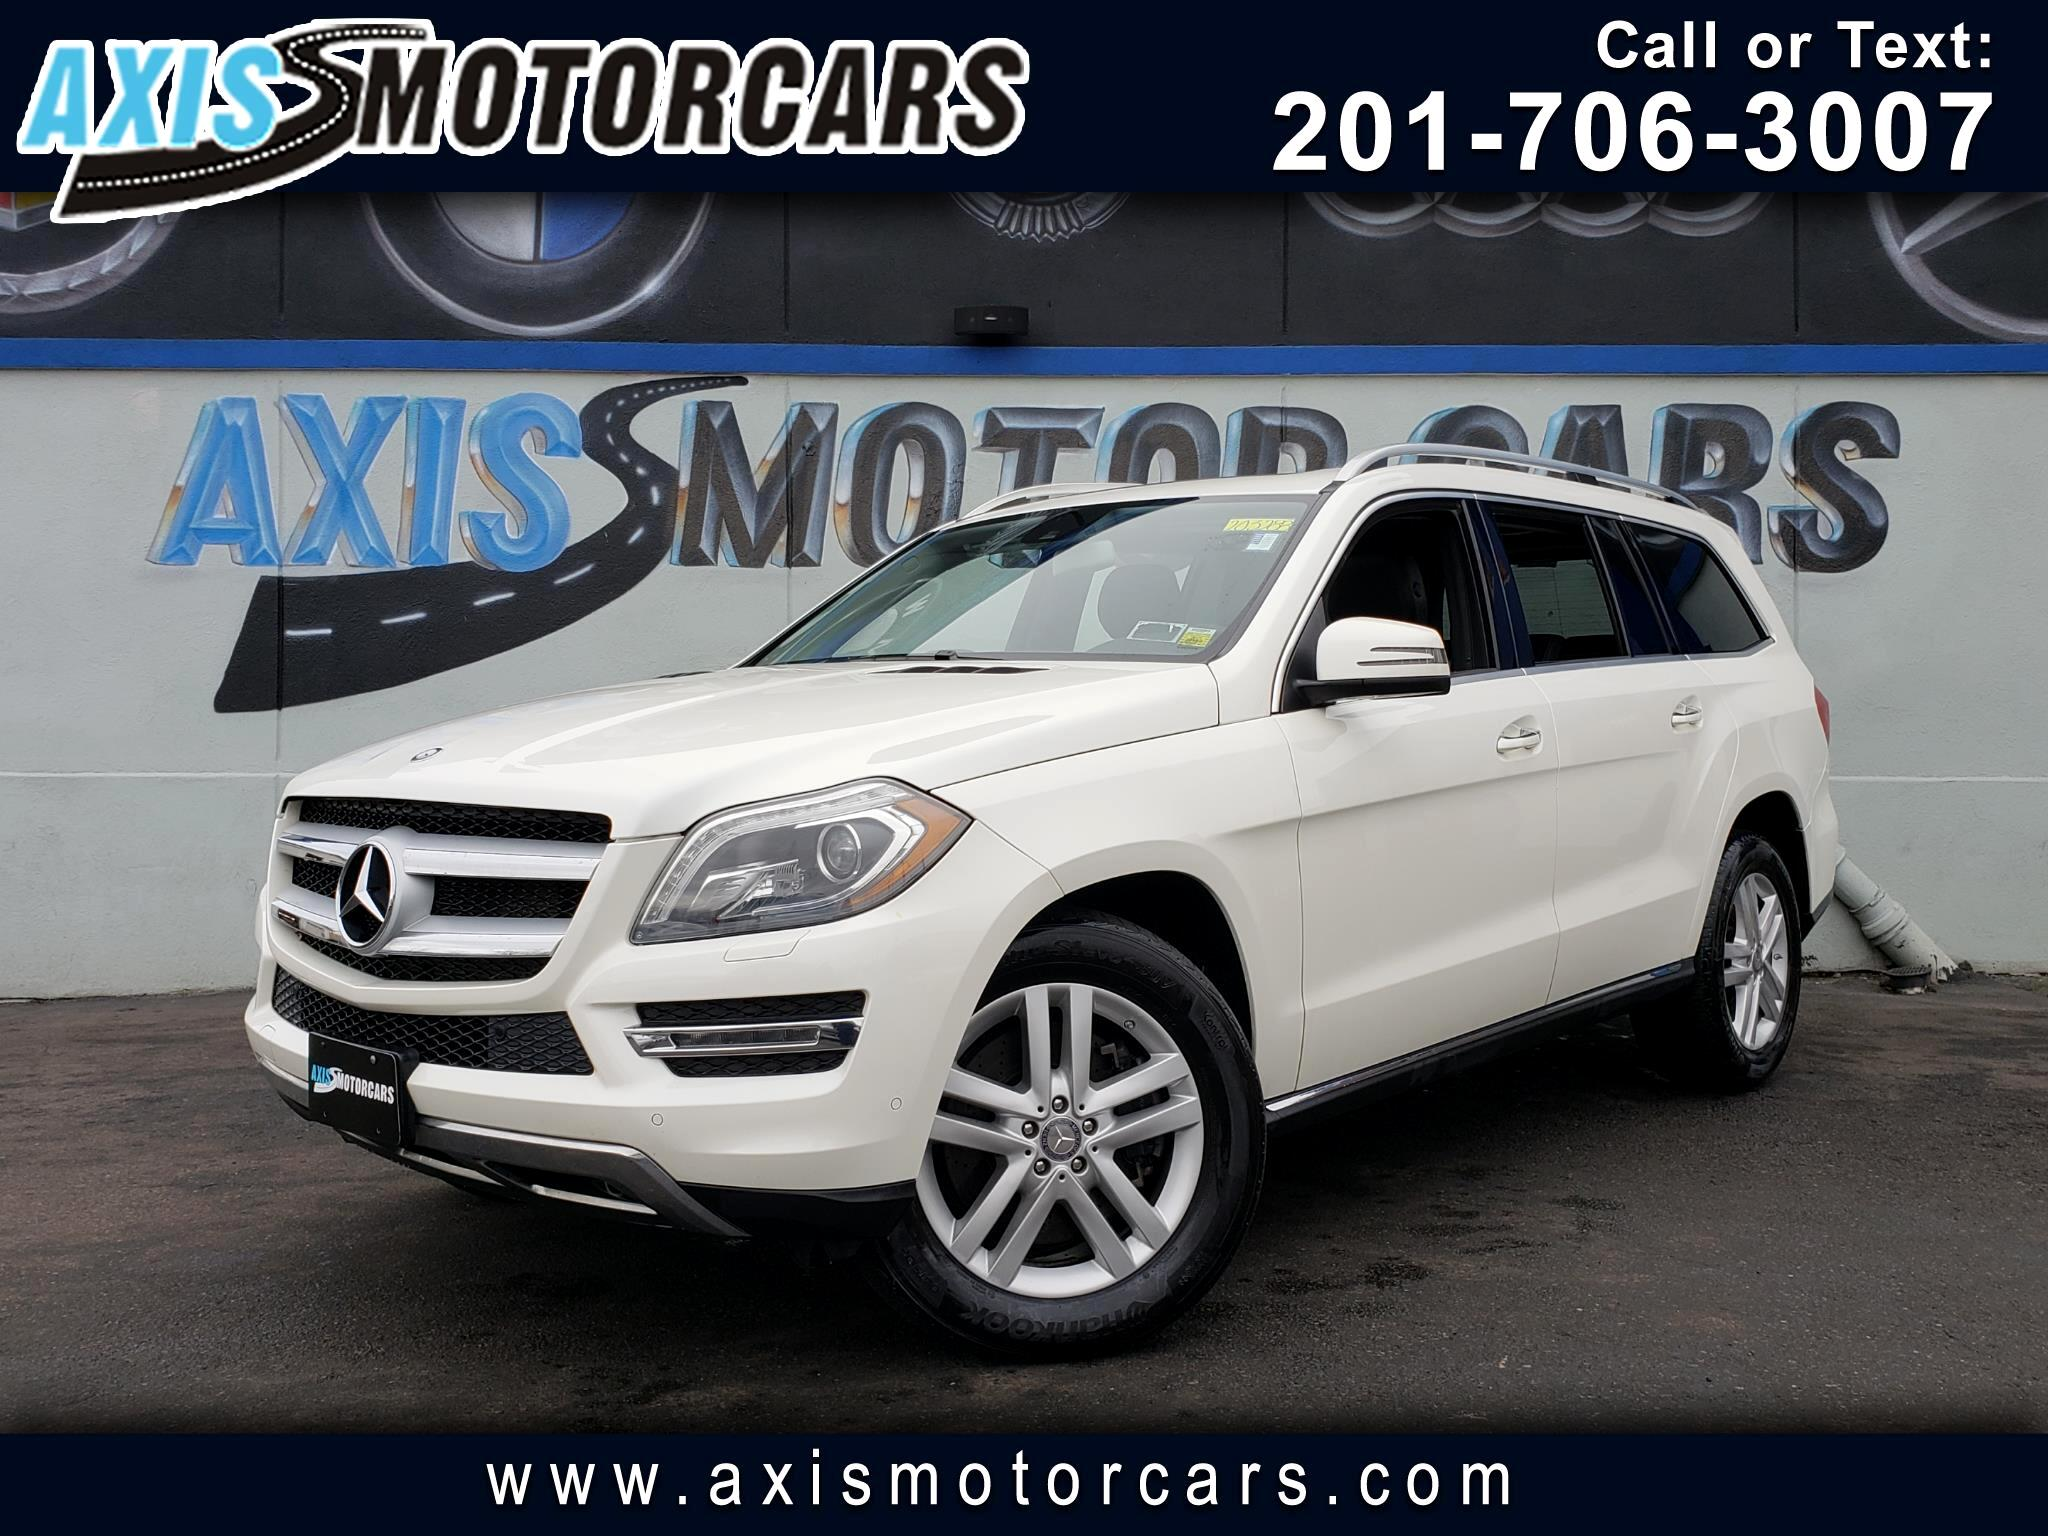 2013 Mercedes-Benz GL 450 4MATIC w/Navigation Bakup Camera Sun Roof